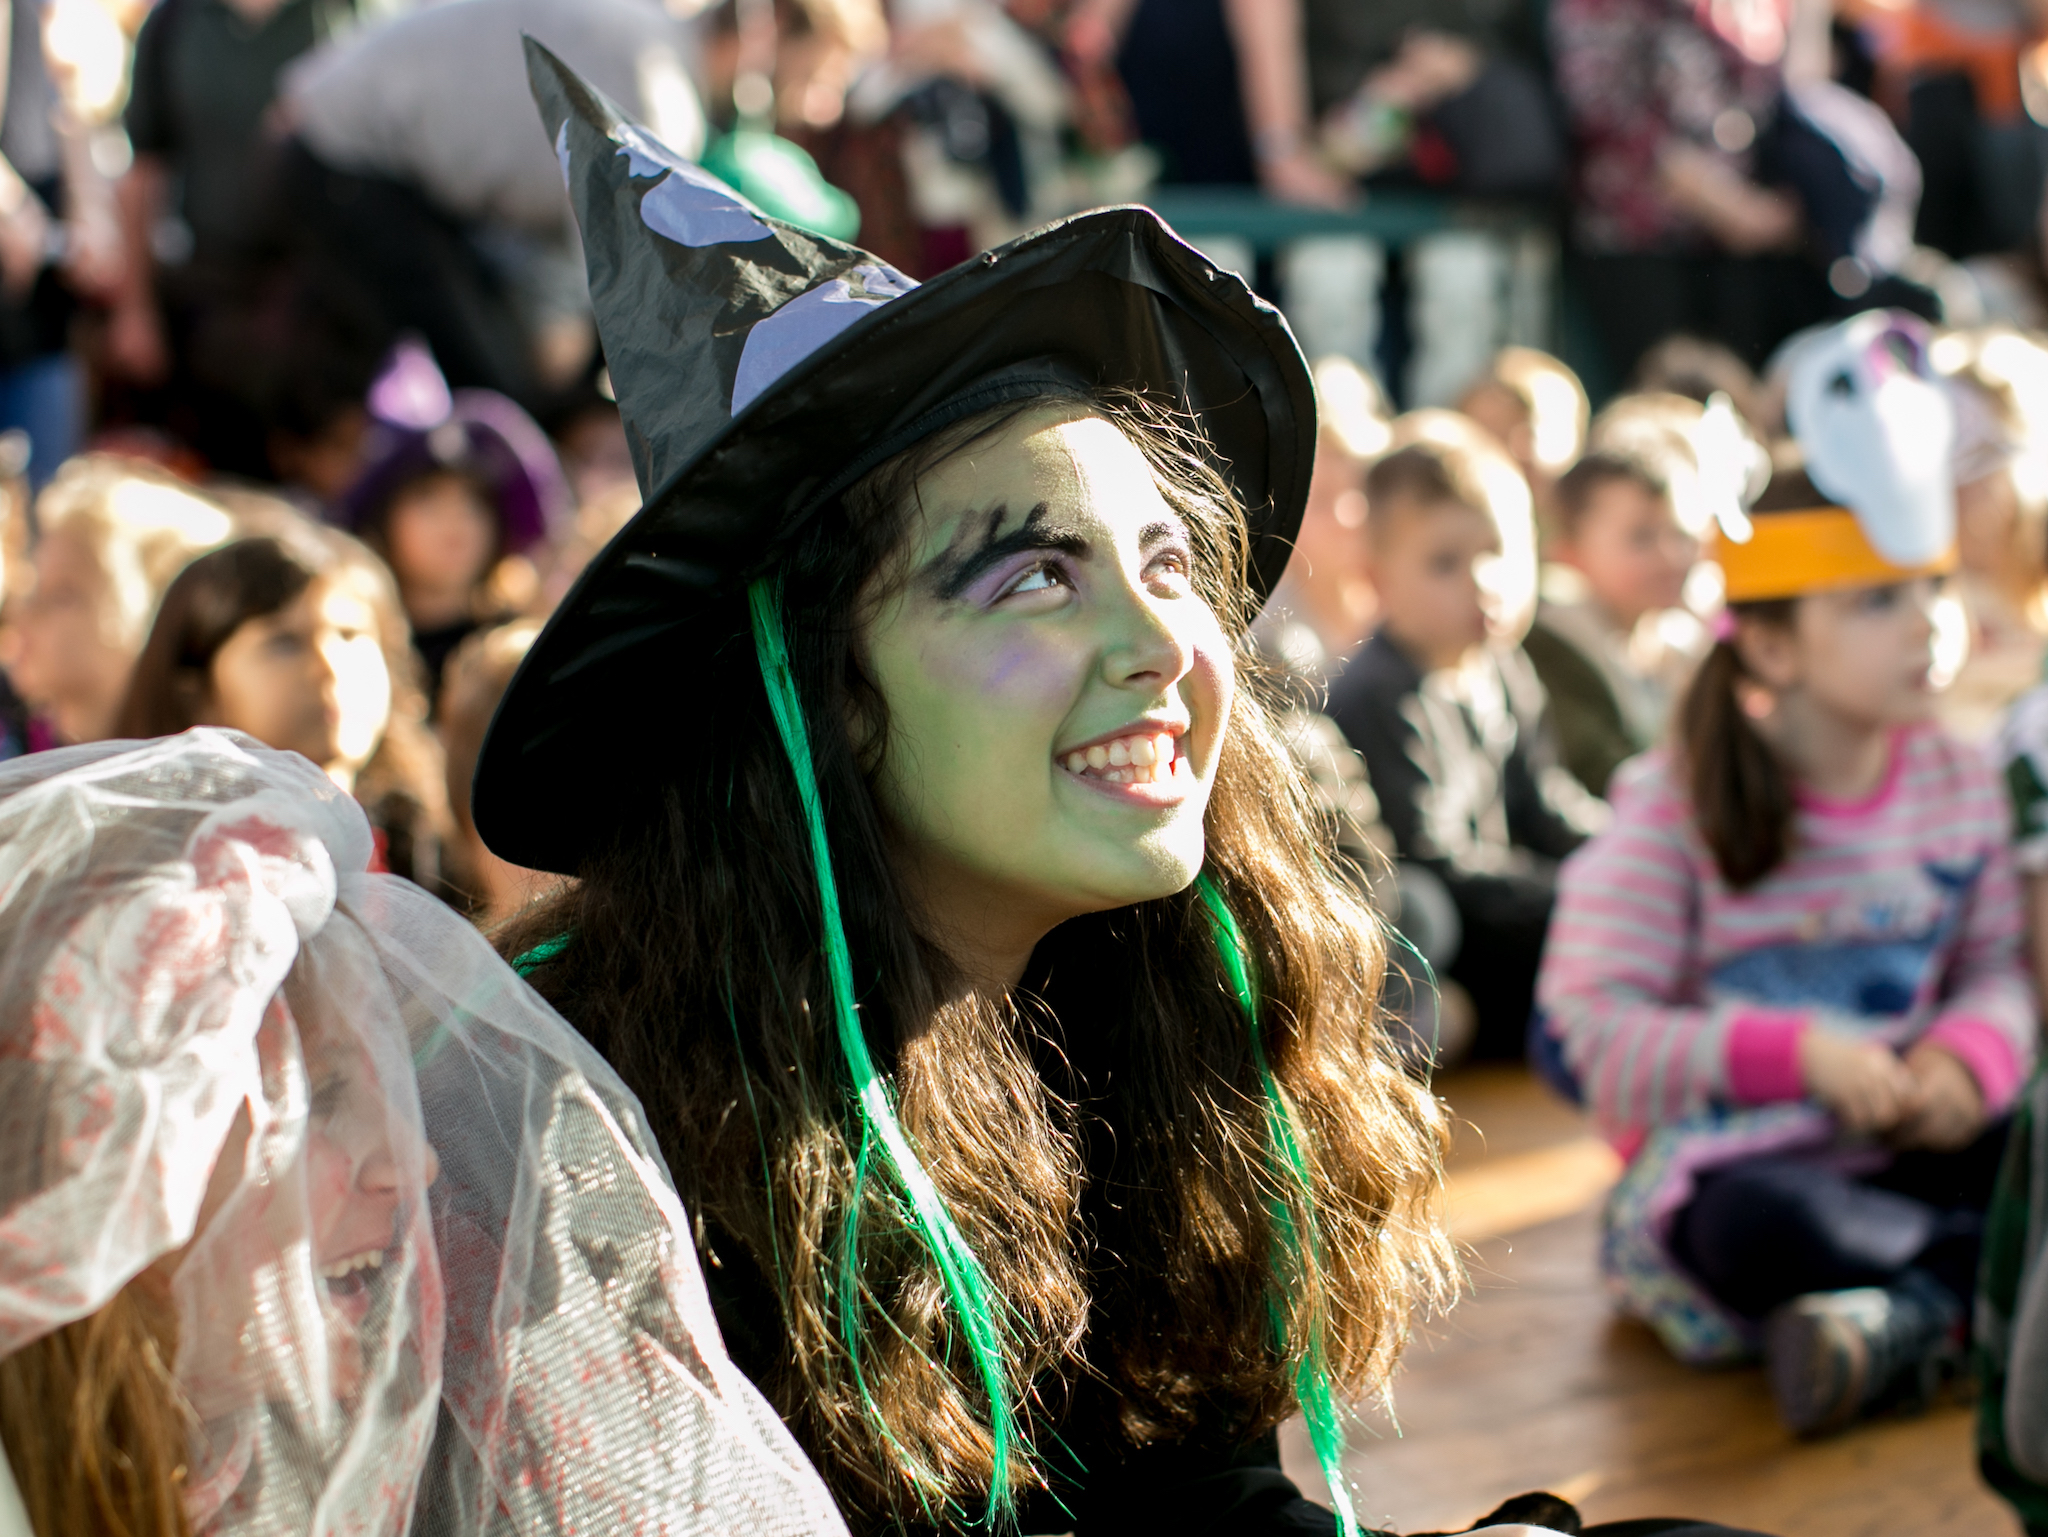 Sensationally spooky Halloween events for families in London